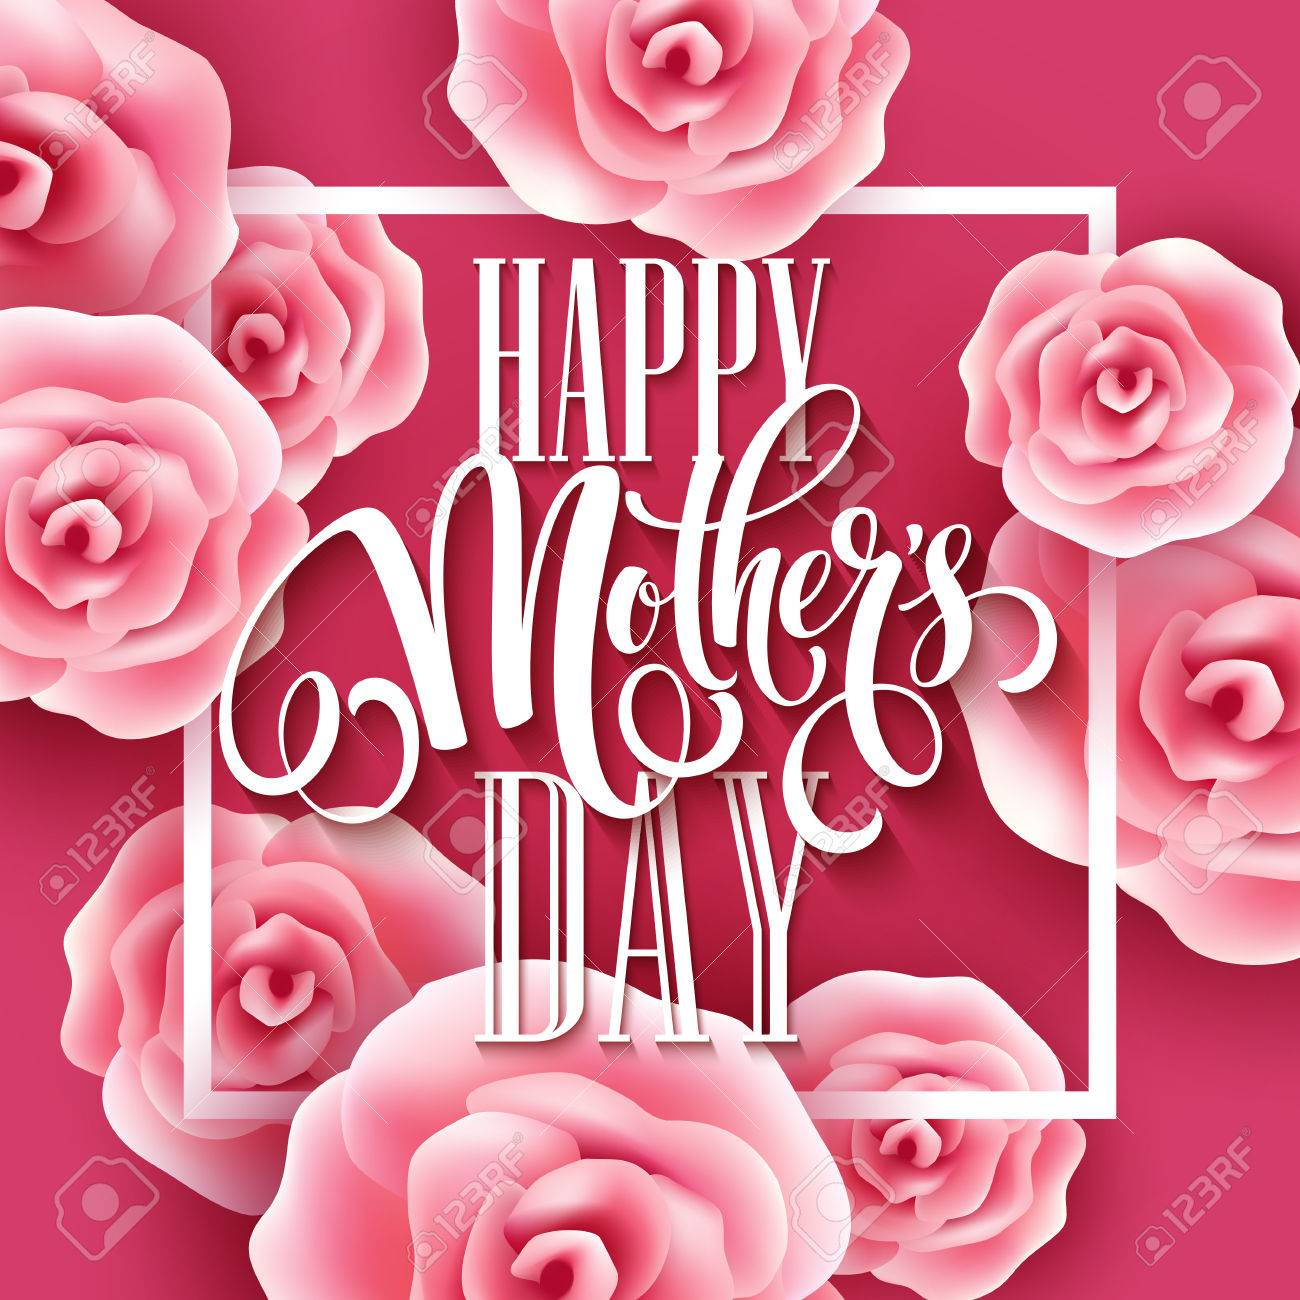 Happy mothers day lettering mothers day greeting card with happy mothers day lettering mothers day greeting card with blooming pink rose flowers vector kristyandbryce Image collections